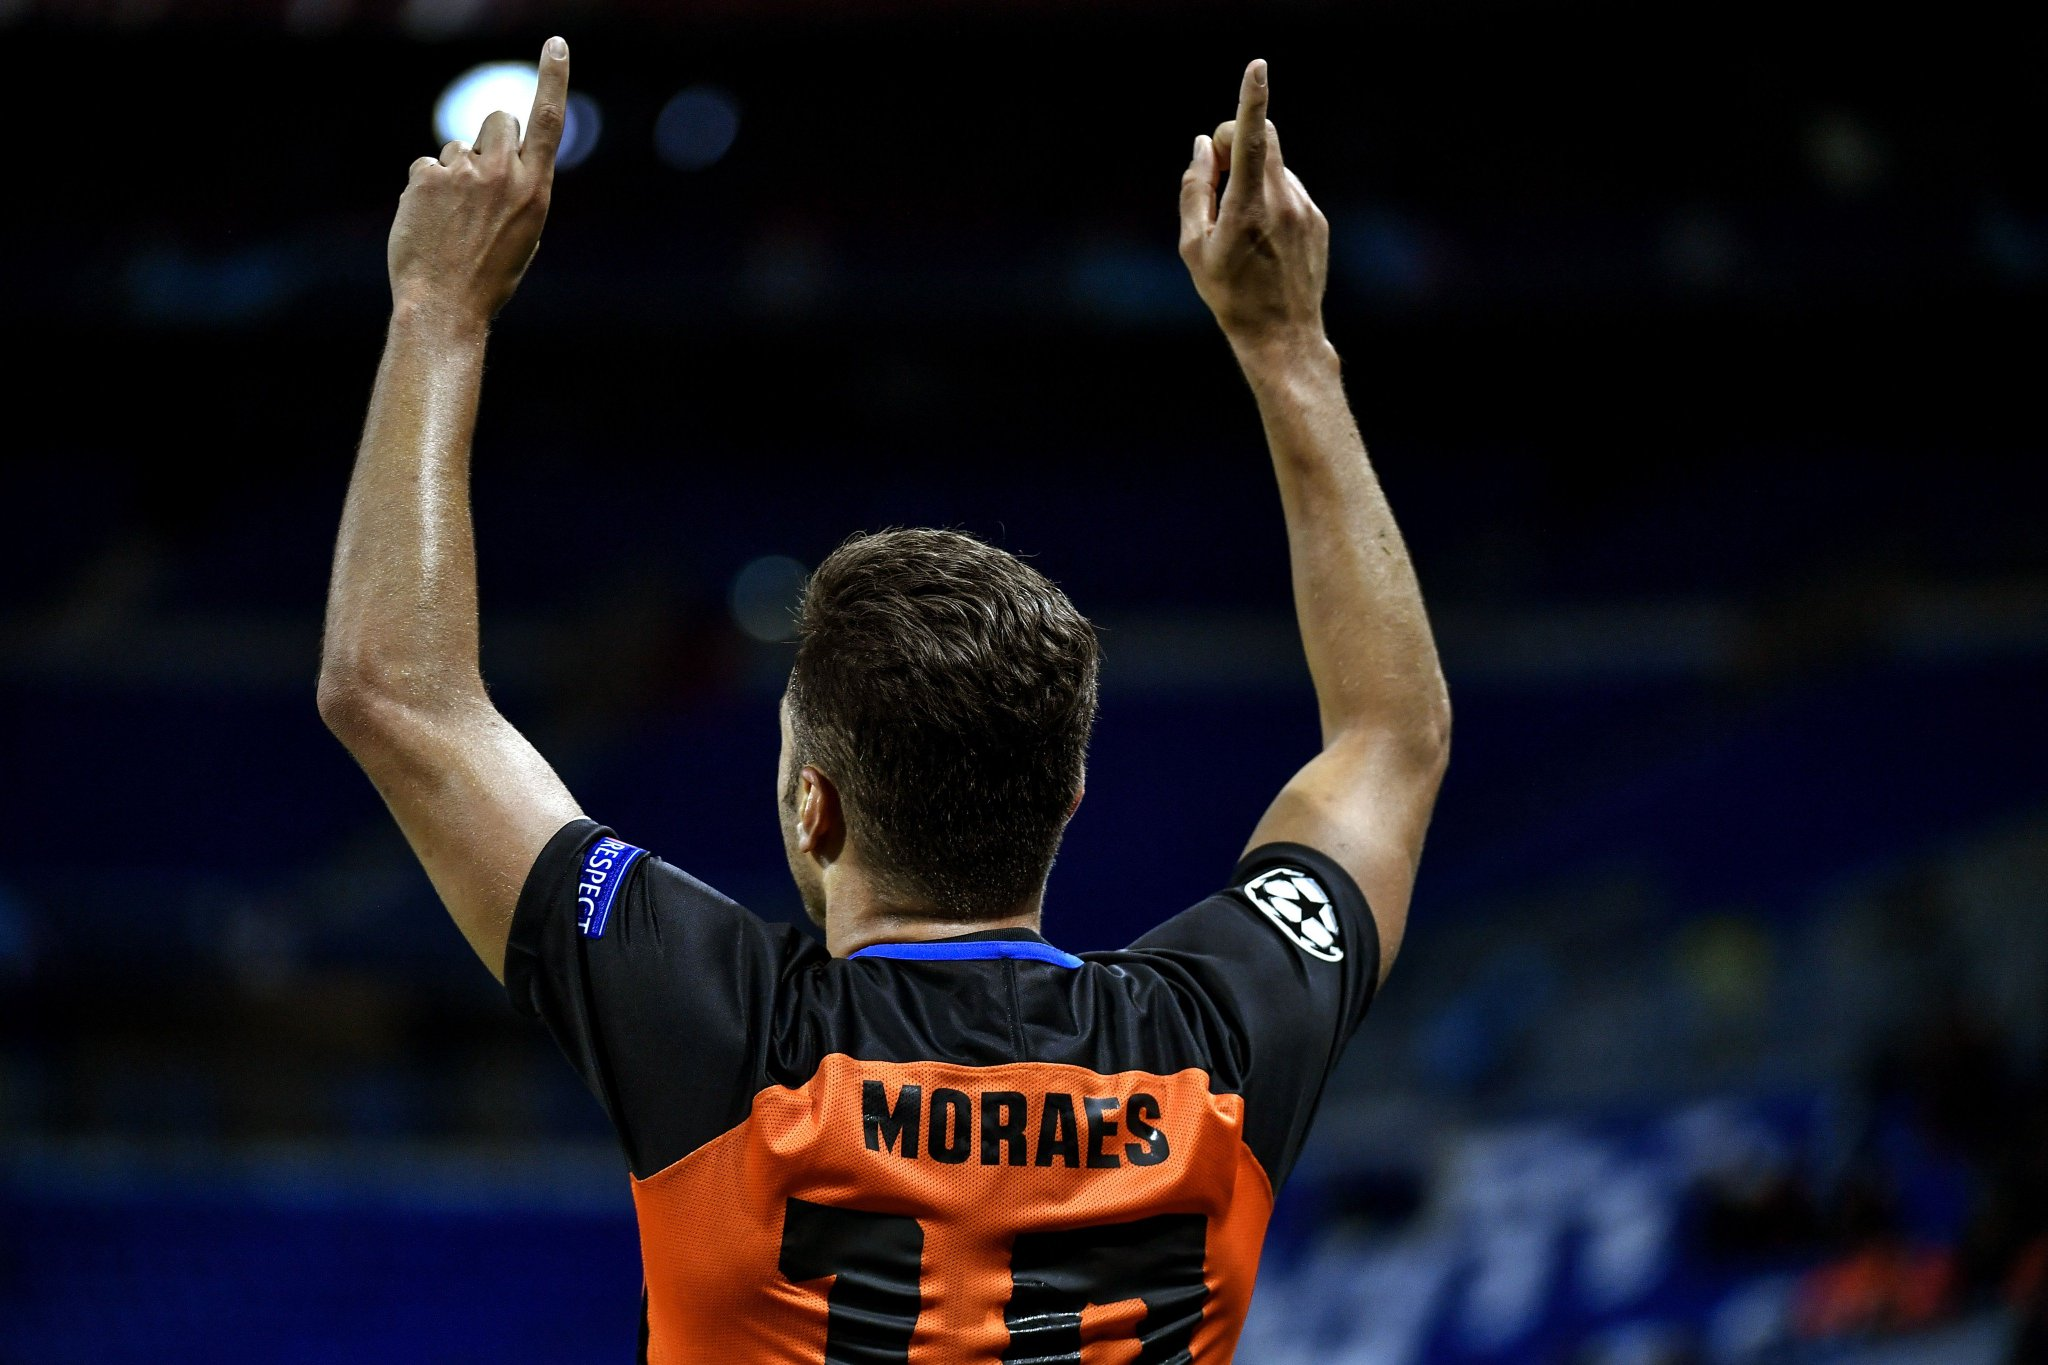 Júnior Moraes has now hit 1⃣2⃣ goals in 1⃣4⃣ games for Shakhtar. ����  #UCL https://t.co/ZbxAyw5Ntp